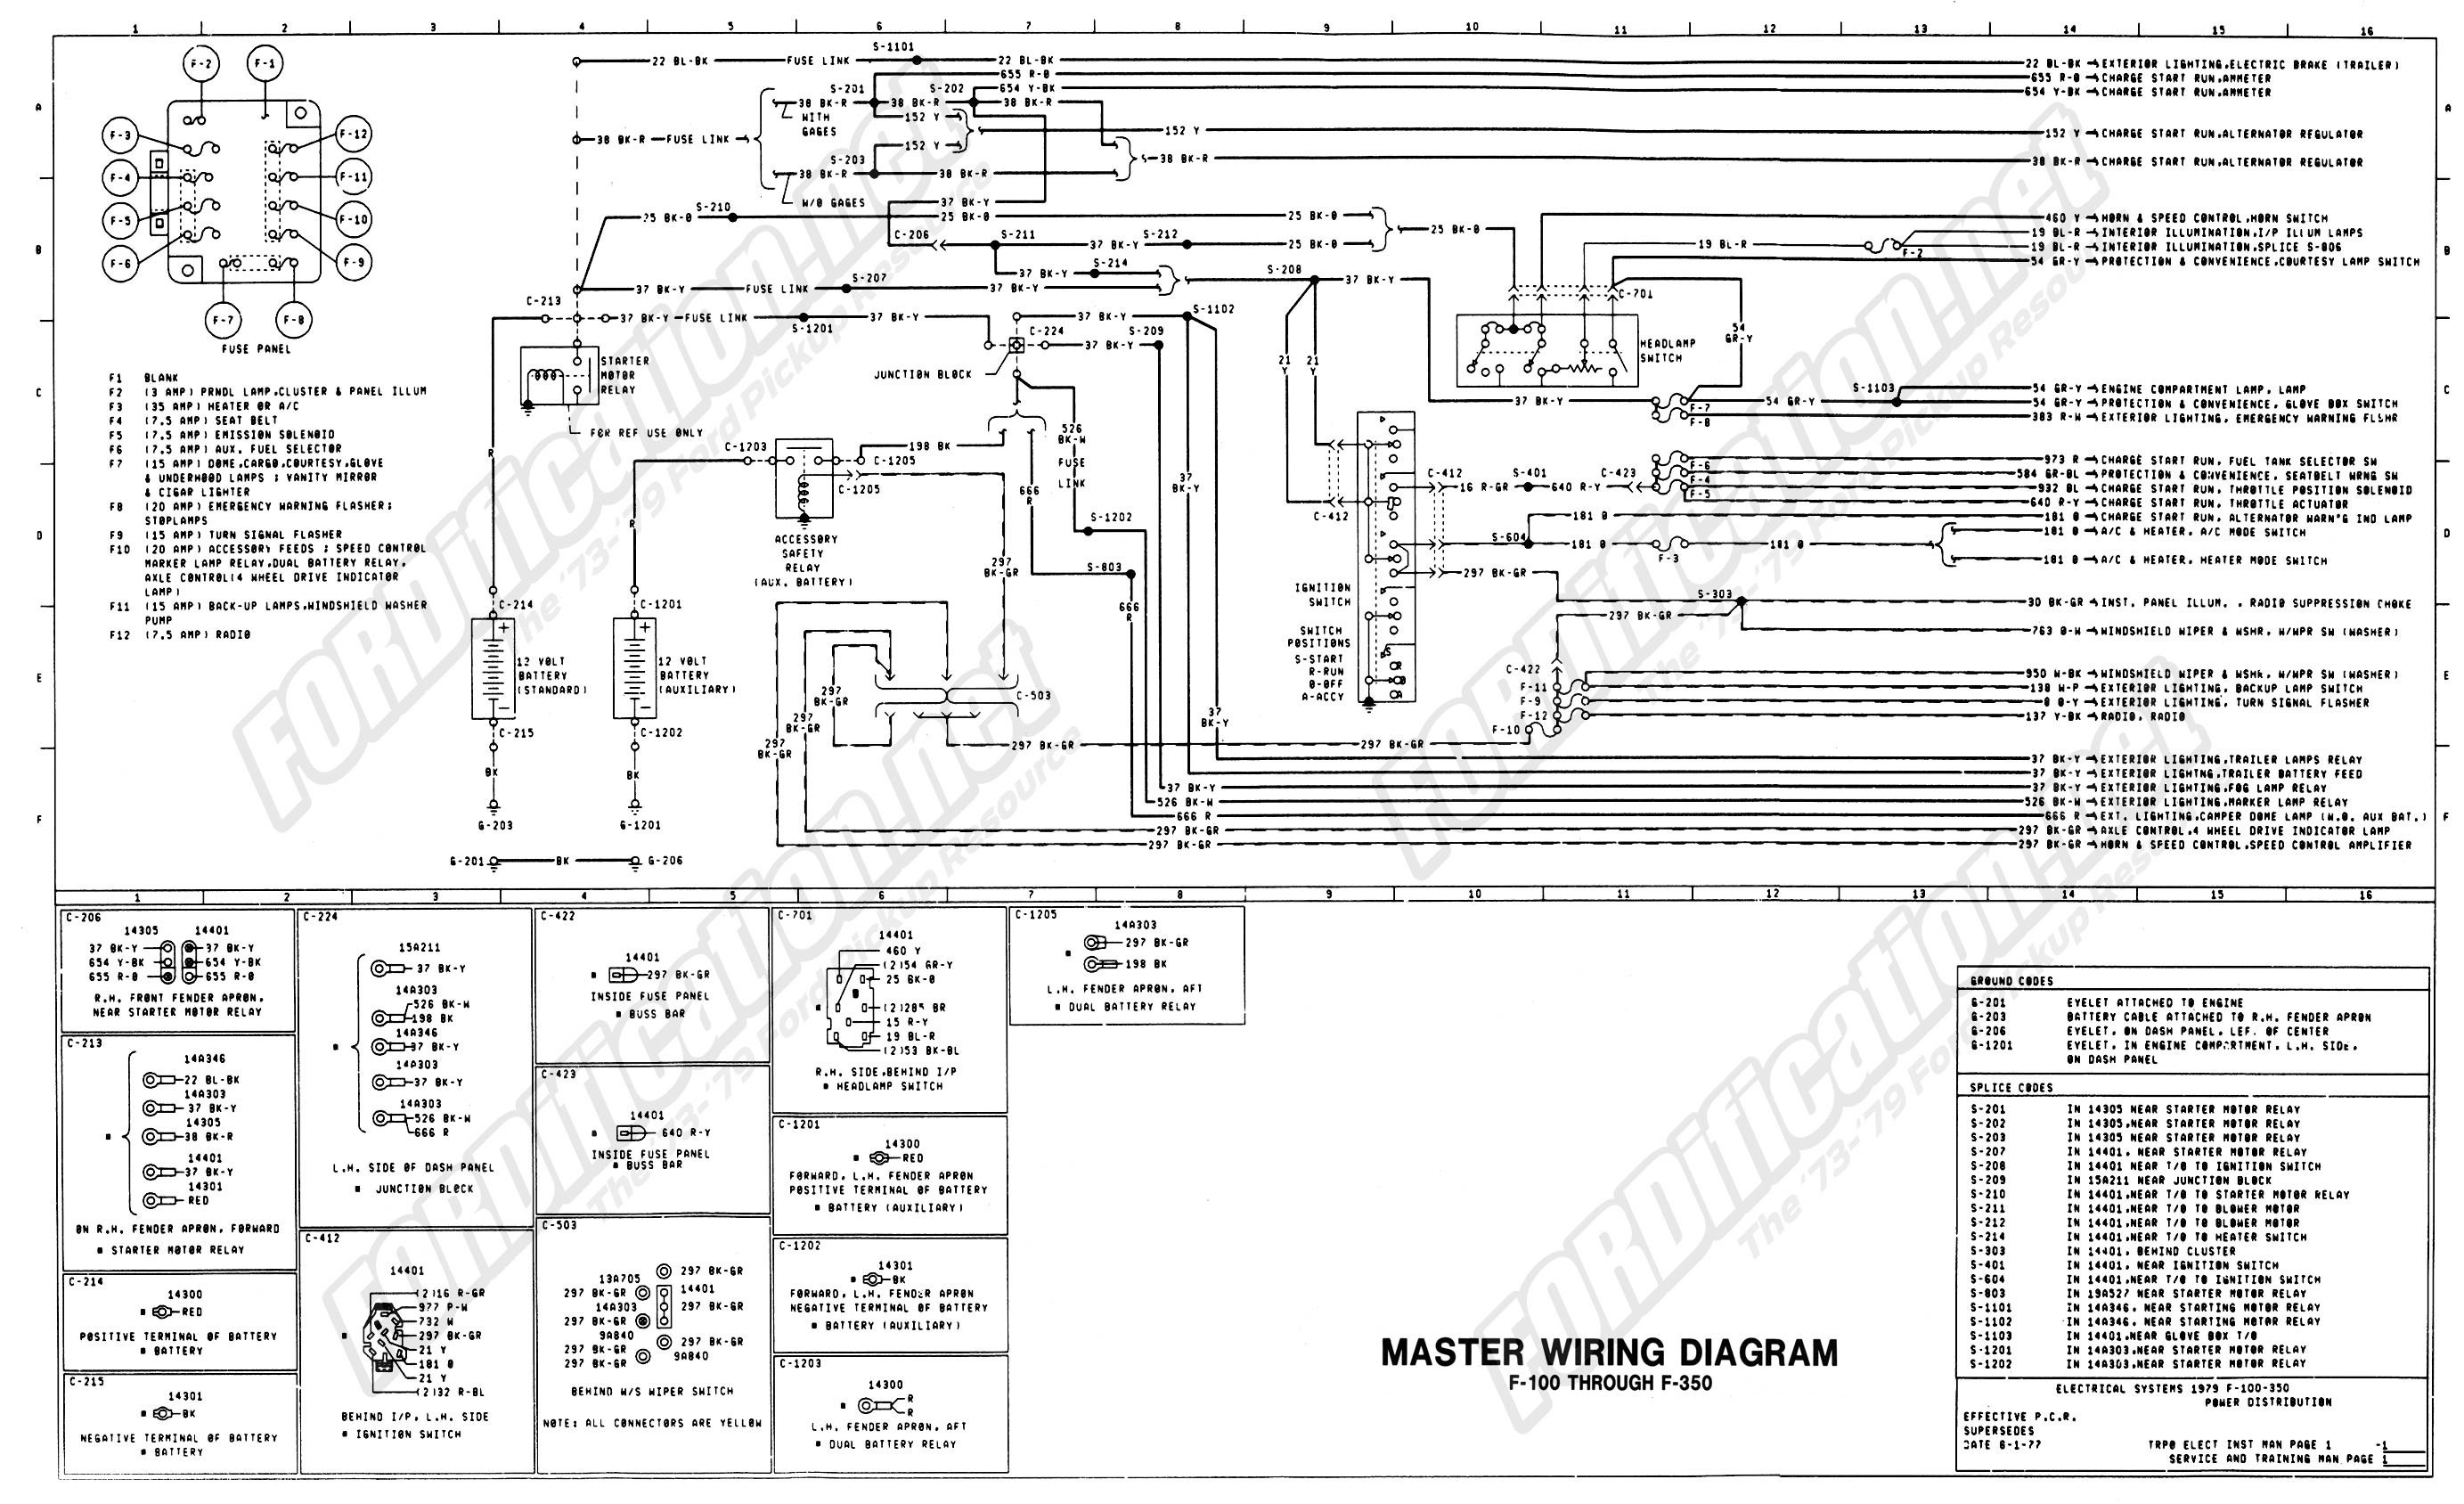 Wiring Diagram For Car Starter Fresh 79 F150 Solenoid Wiring Diagram Ford Truck Enthusiasts Forums